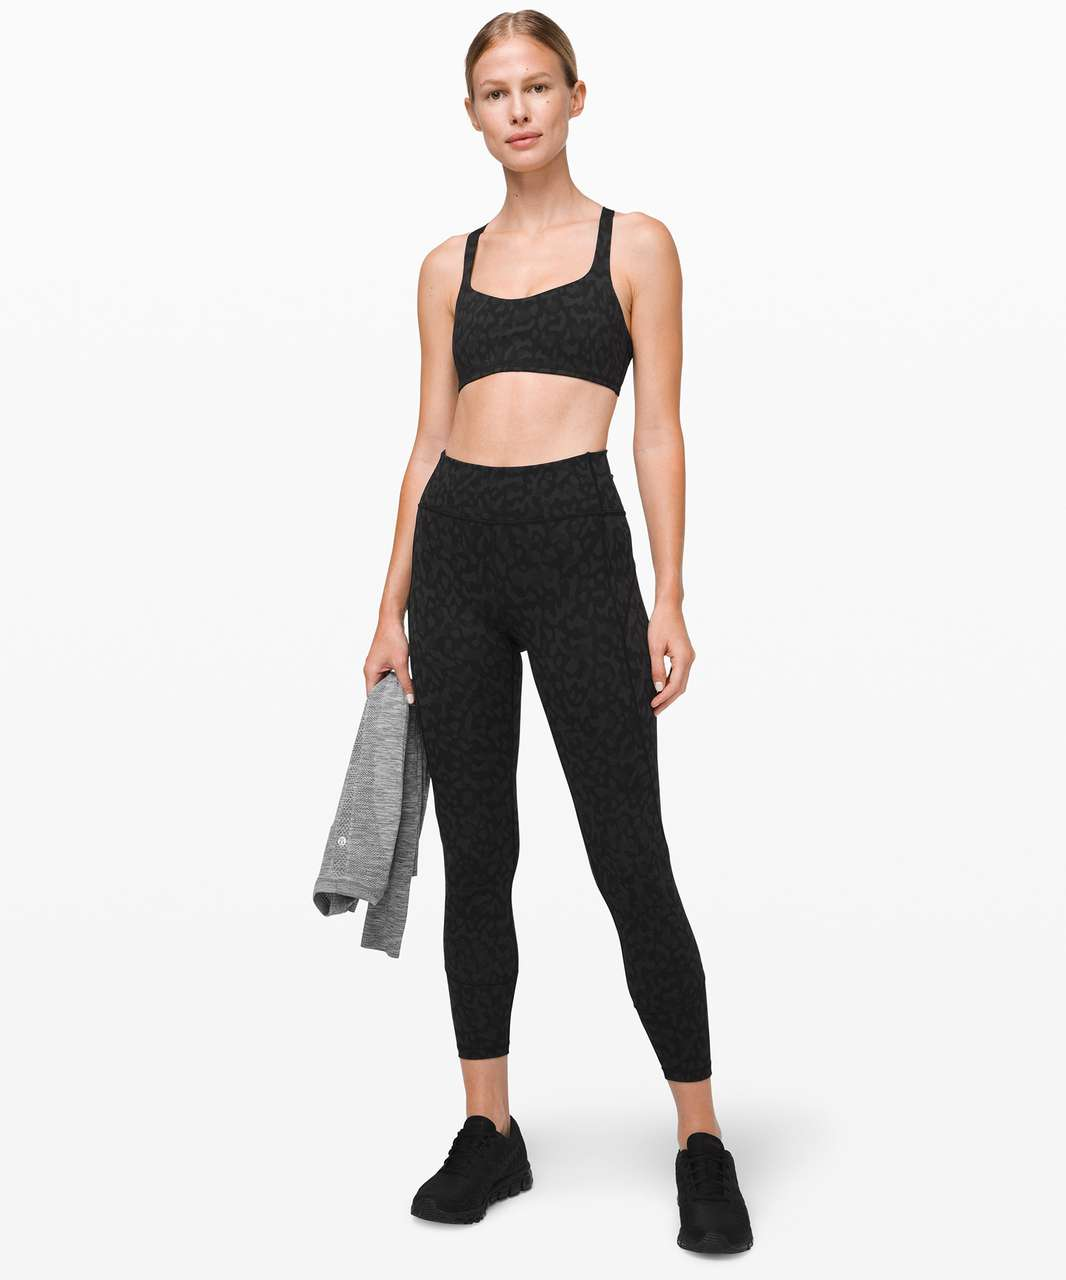 Lululemon Free To Be Bra - Formation Camo Deep Coal Multi